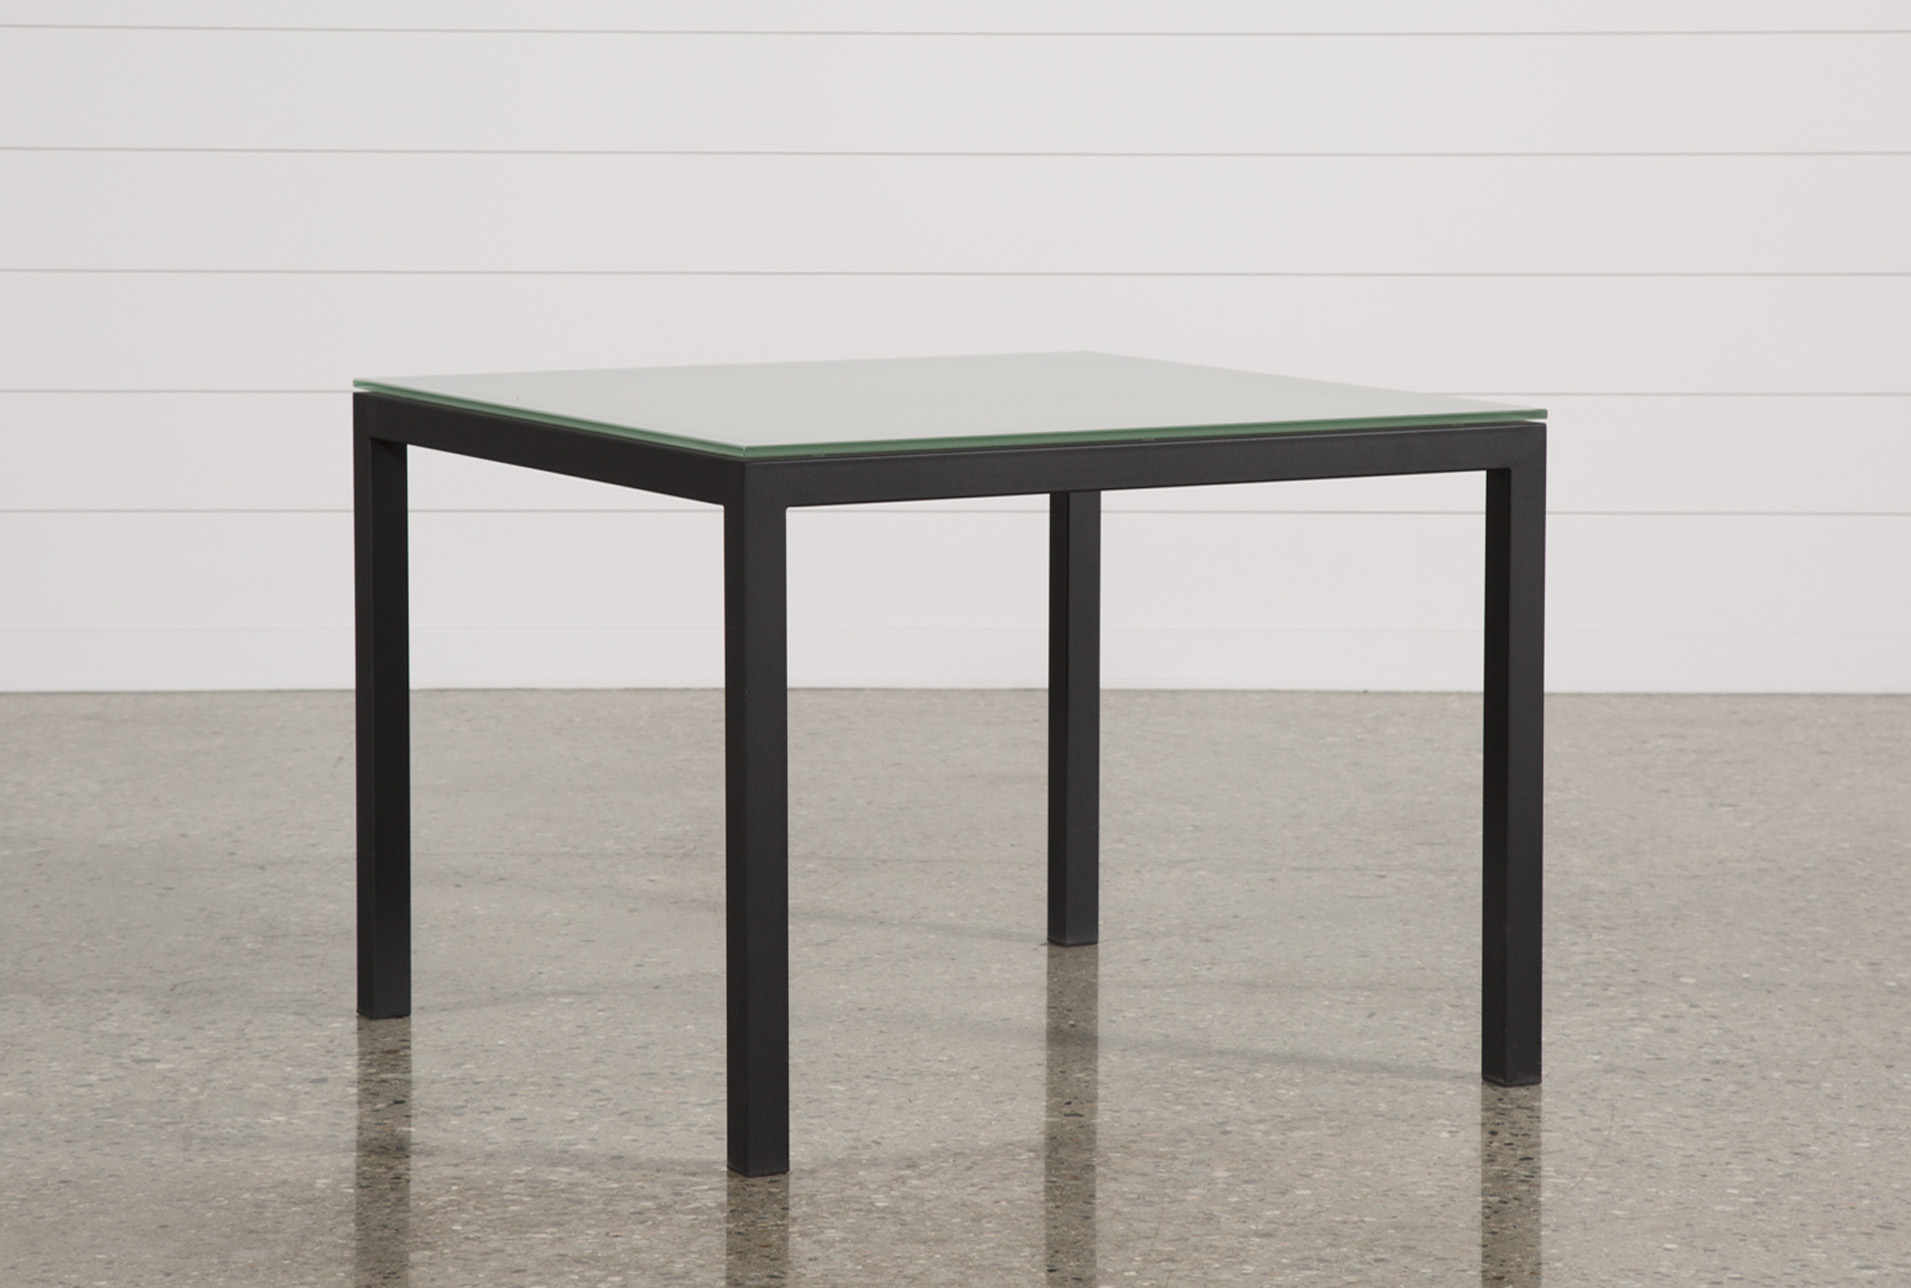 Merveilleux Ina Matte Black 40 Inch Square Dining Table W/Frosted Glass   360